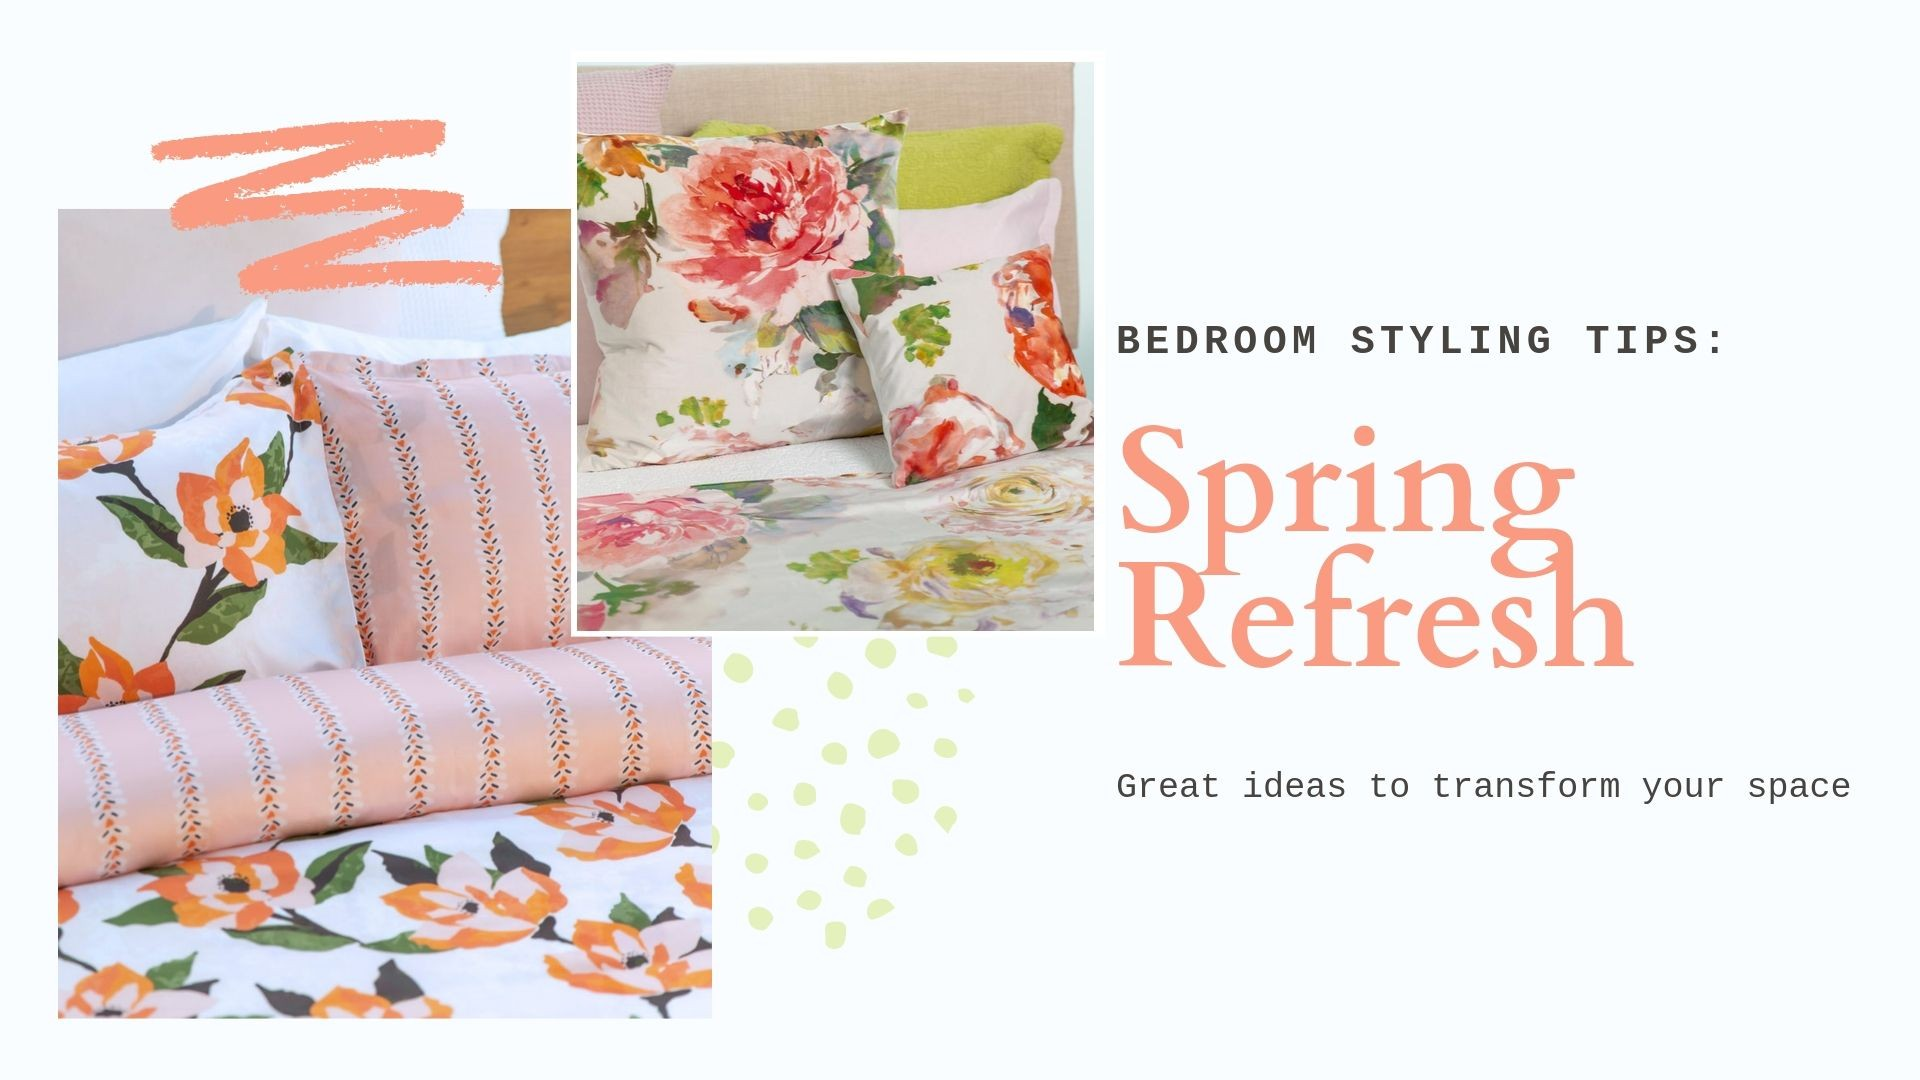 Bedroom Styling tips: Spring Refresh